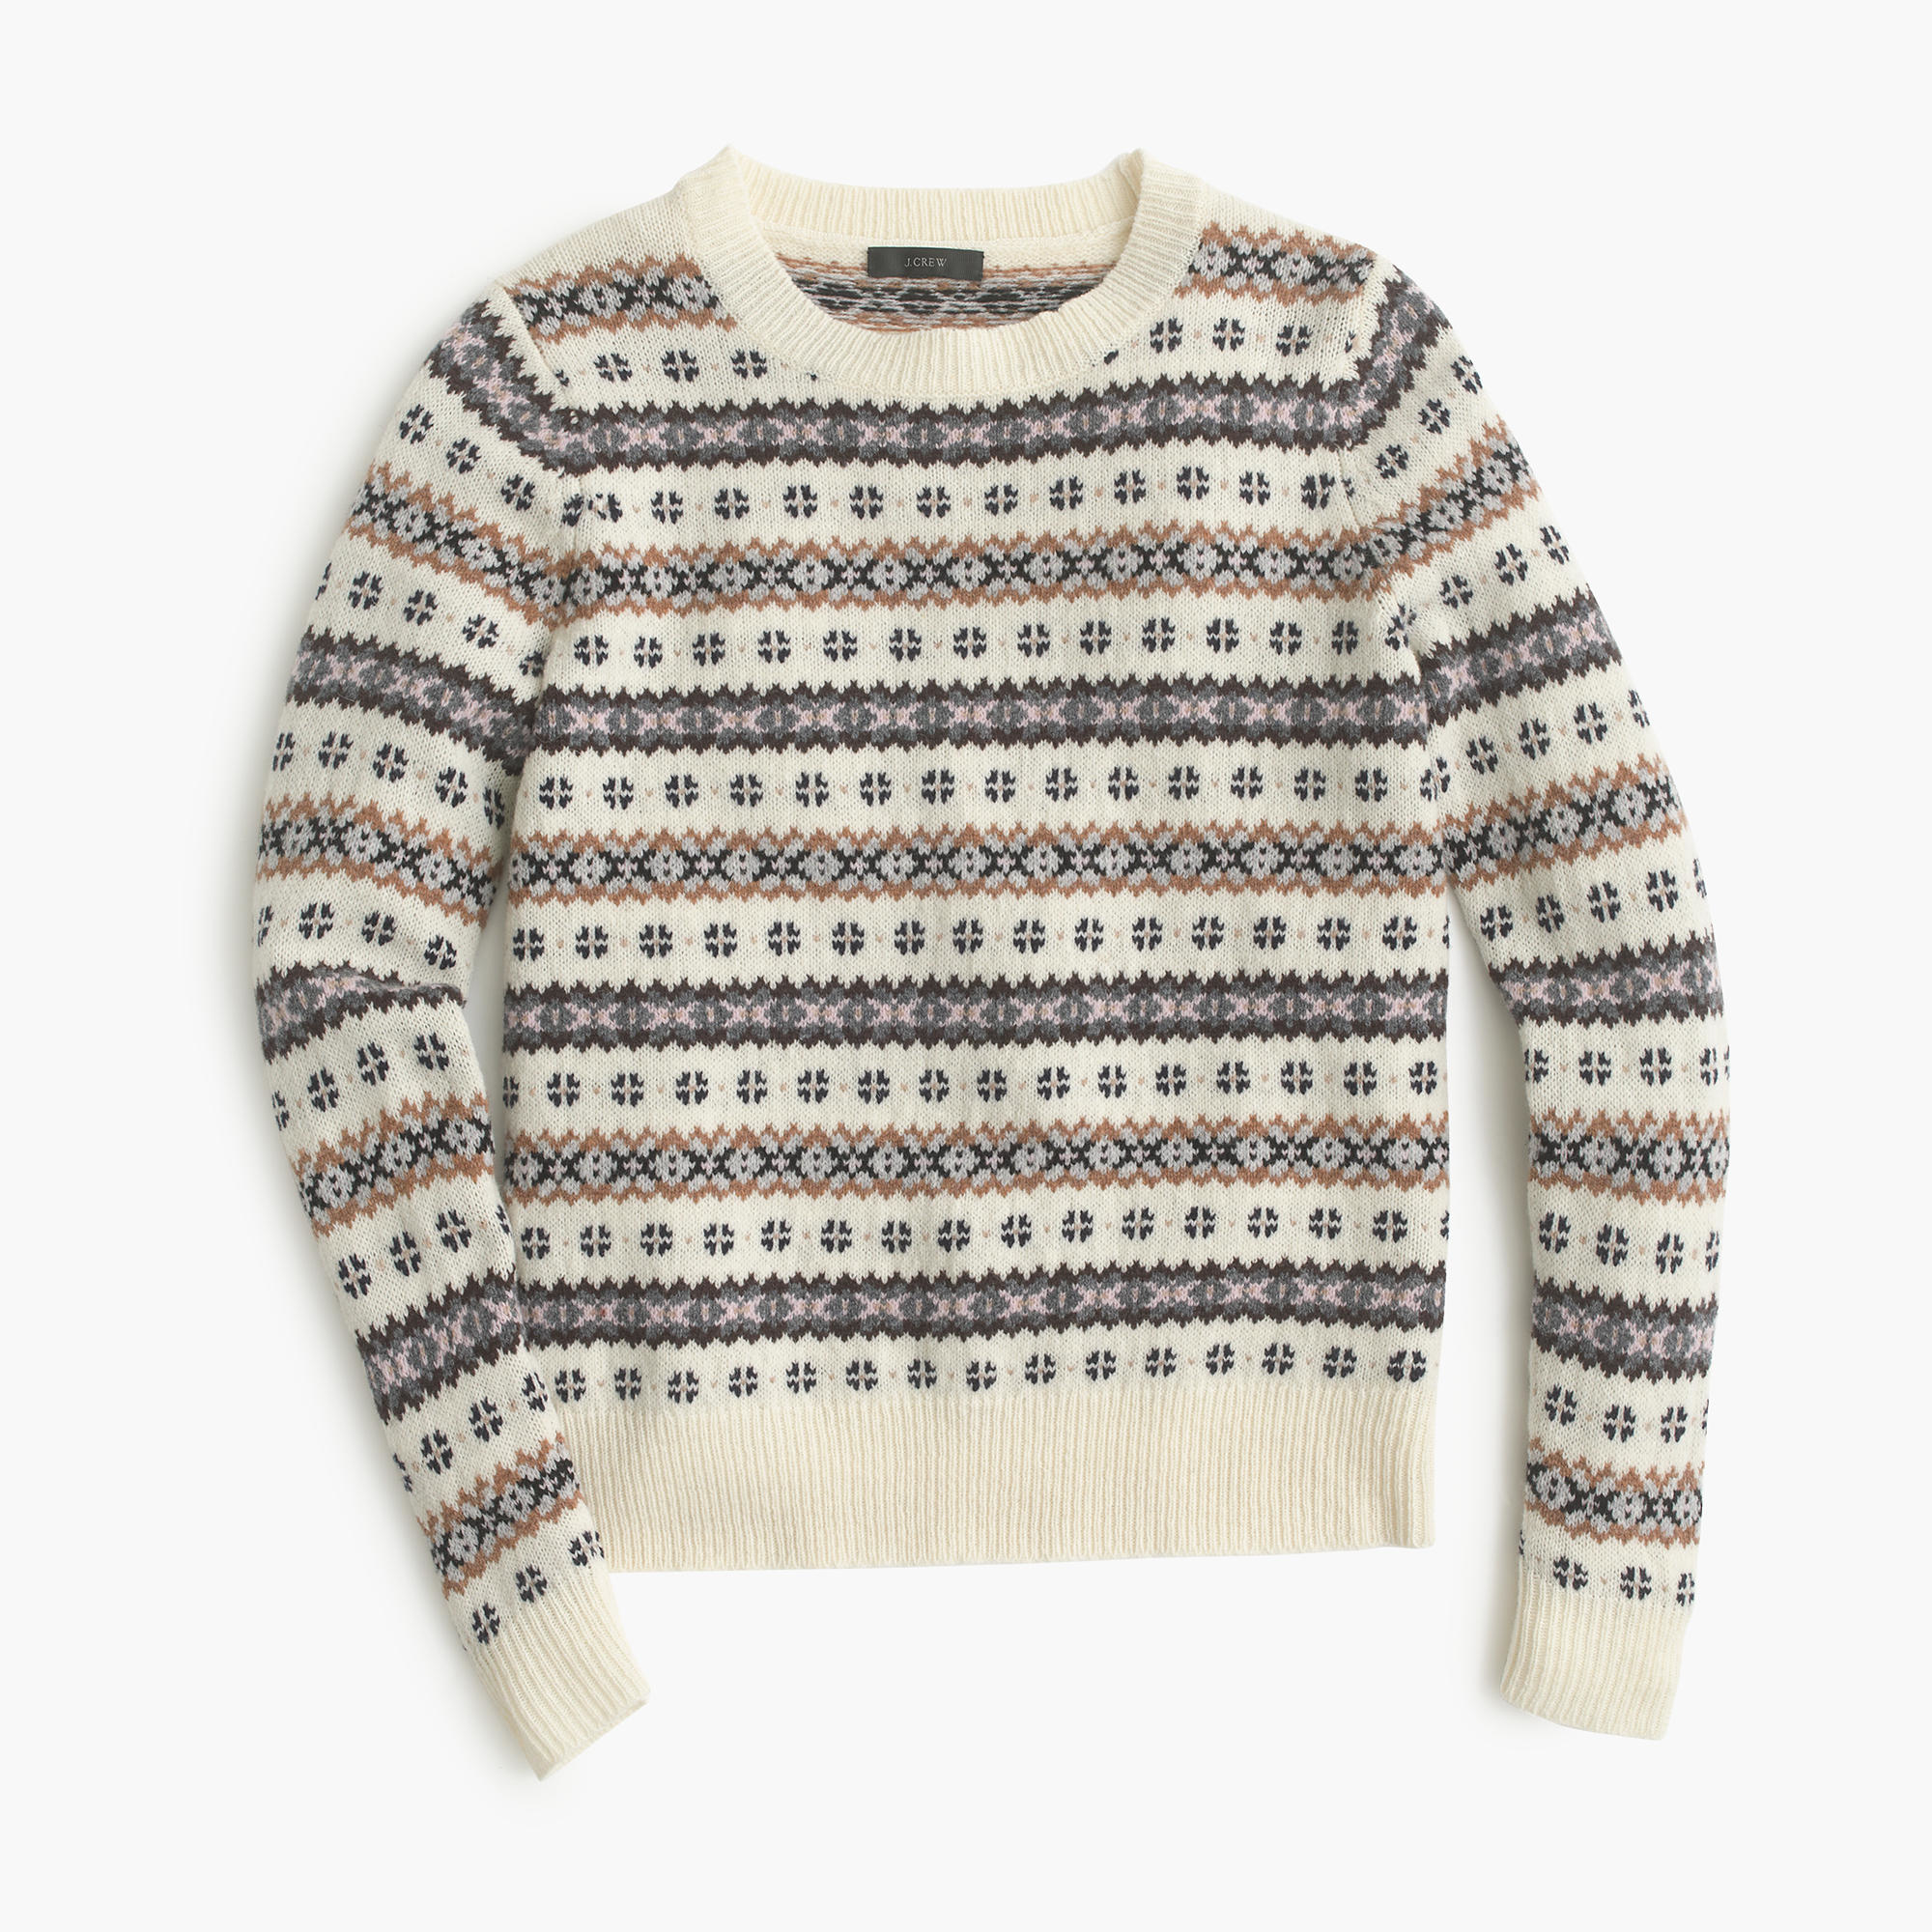 Fair Isle Sweater Womens | Fair Isle Sweater | Fair Isle Sweaters for Women